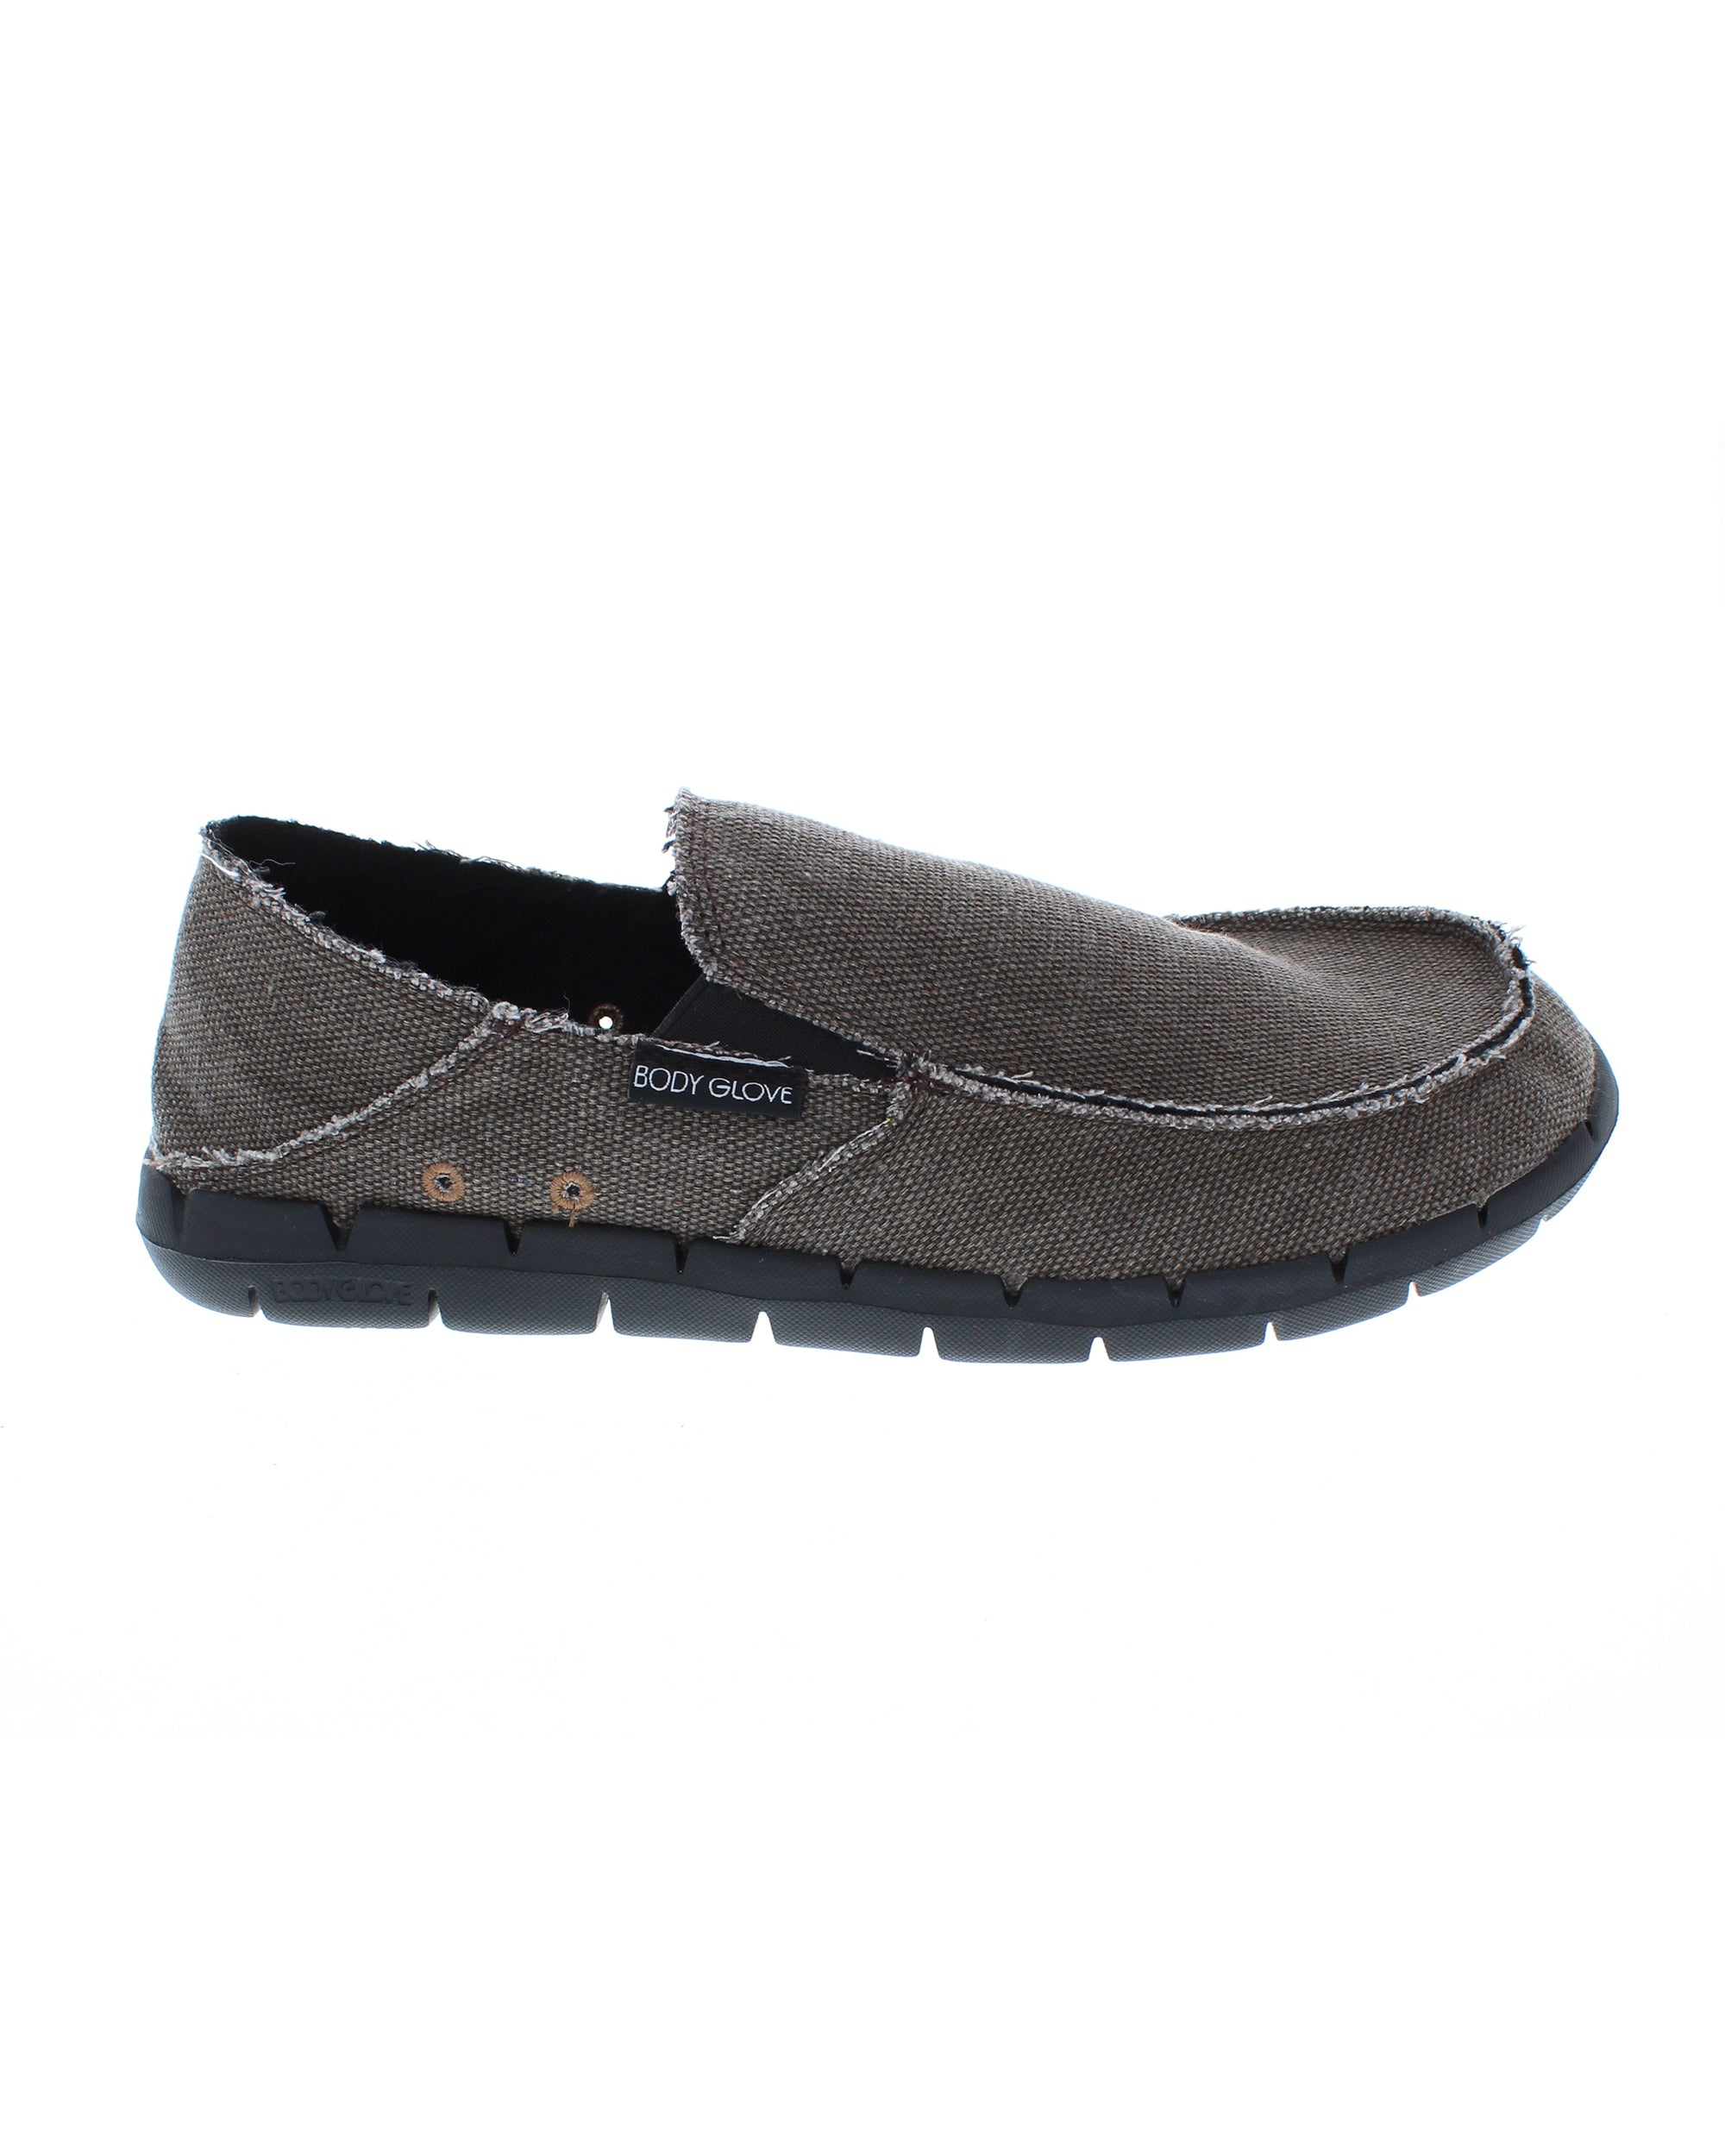 Men's Islander Slip-On Sneakers - Chocolate